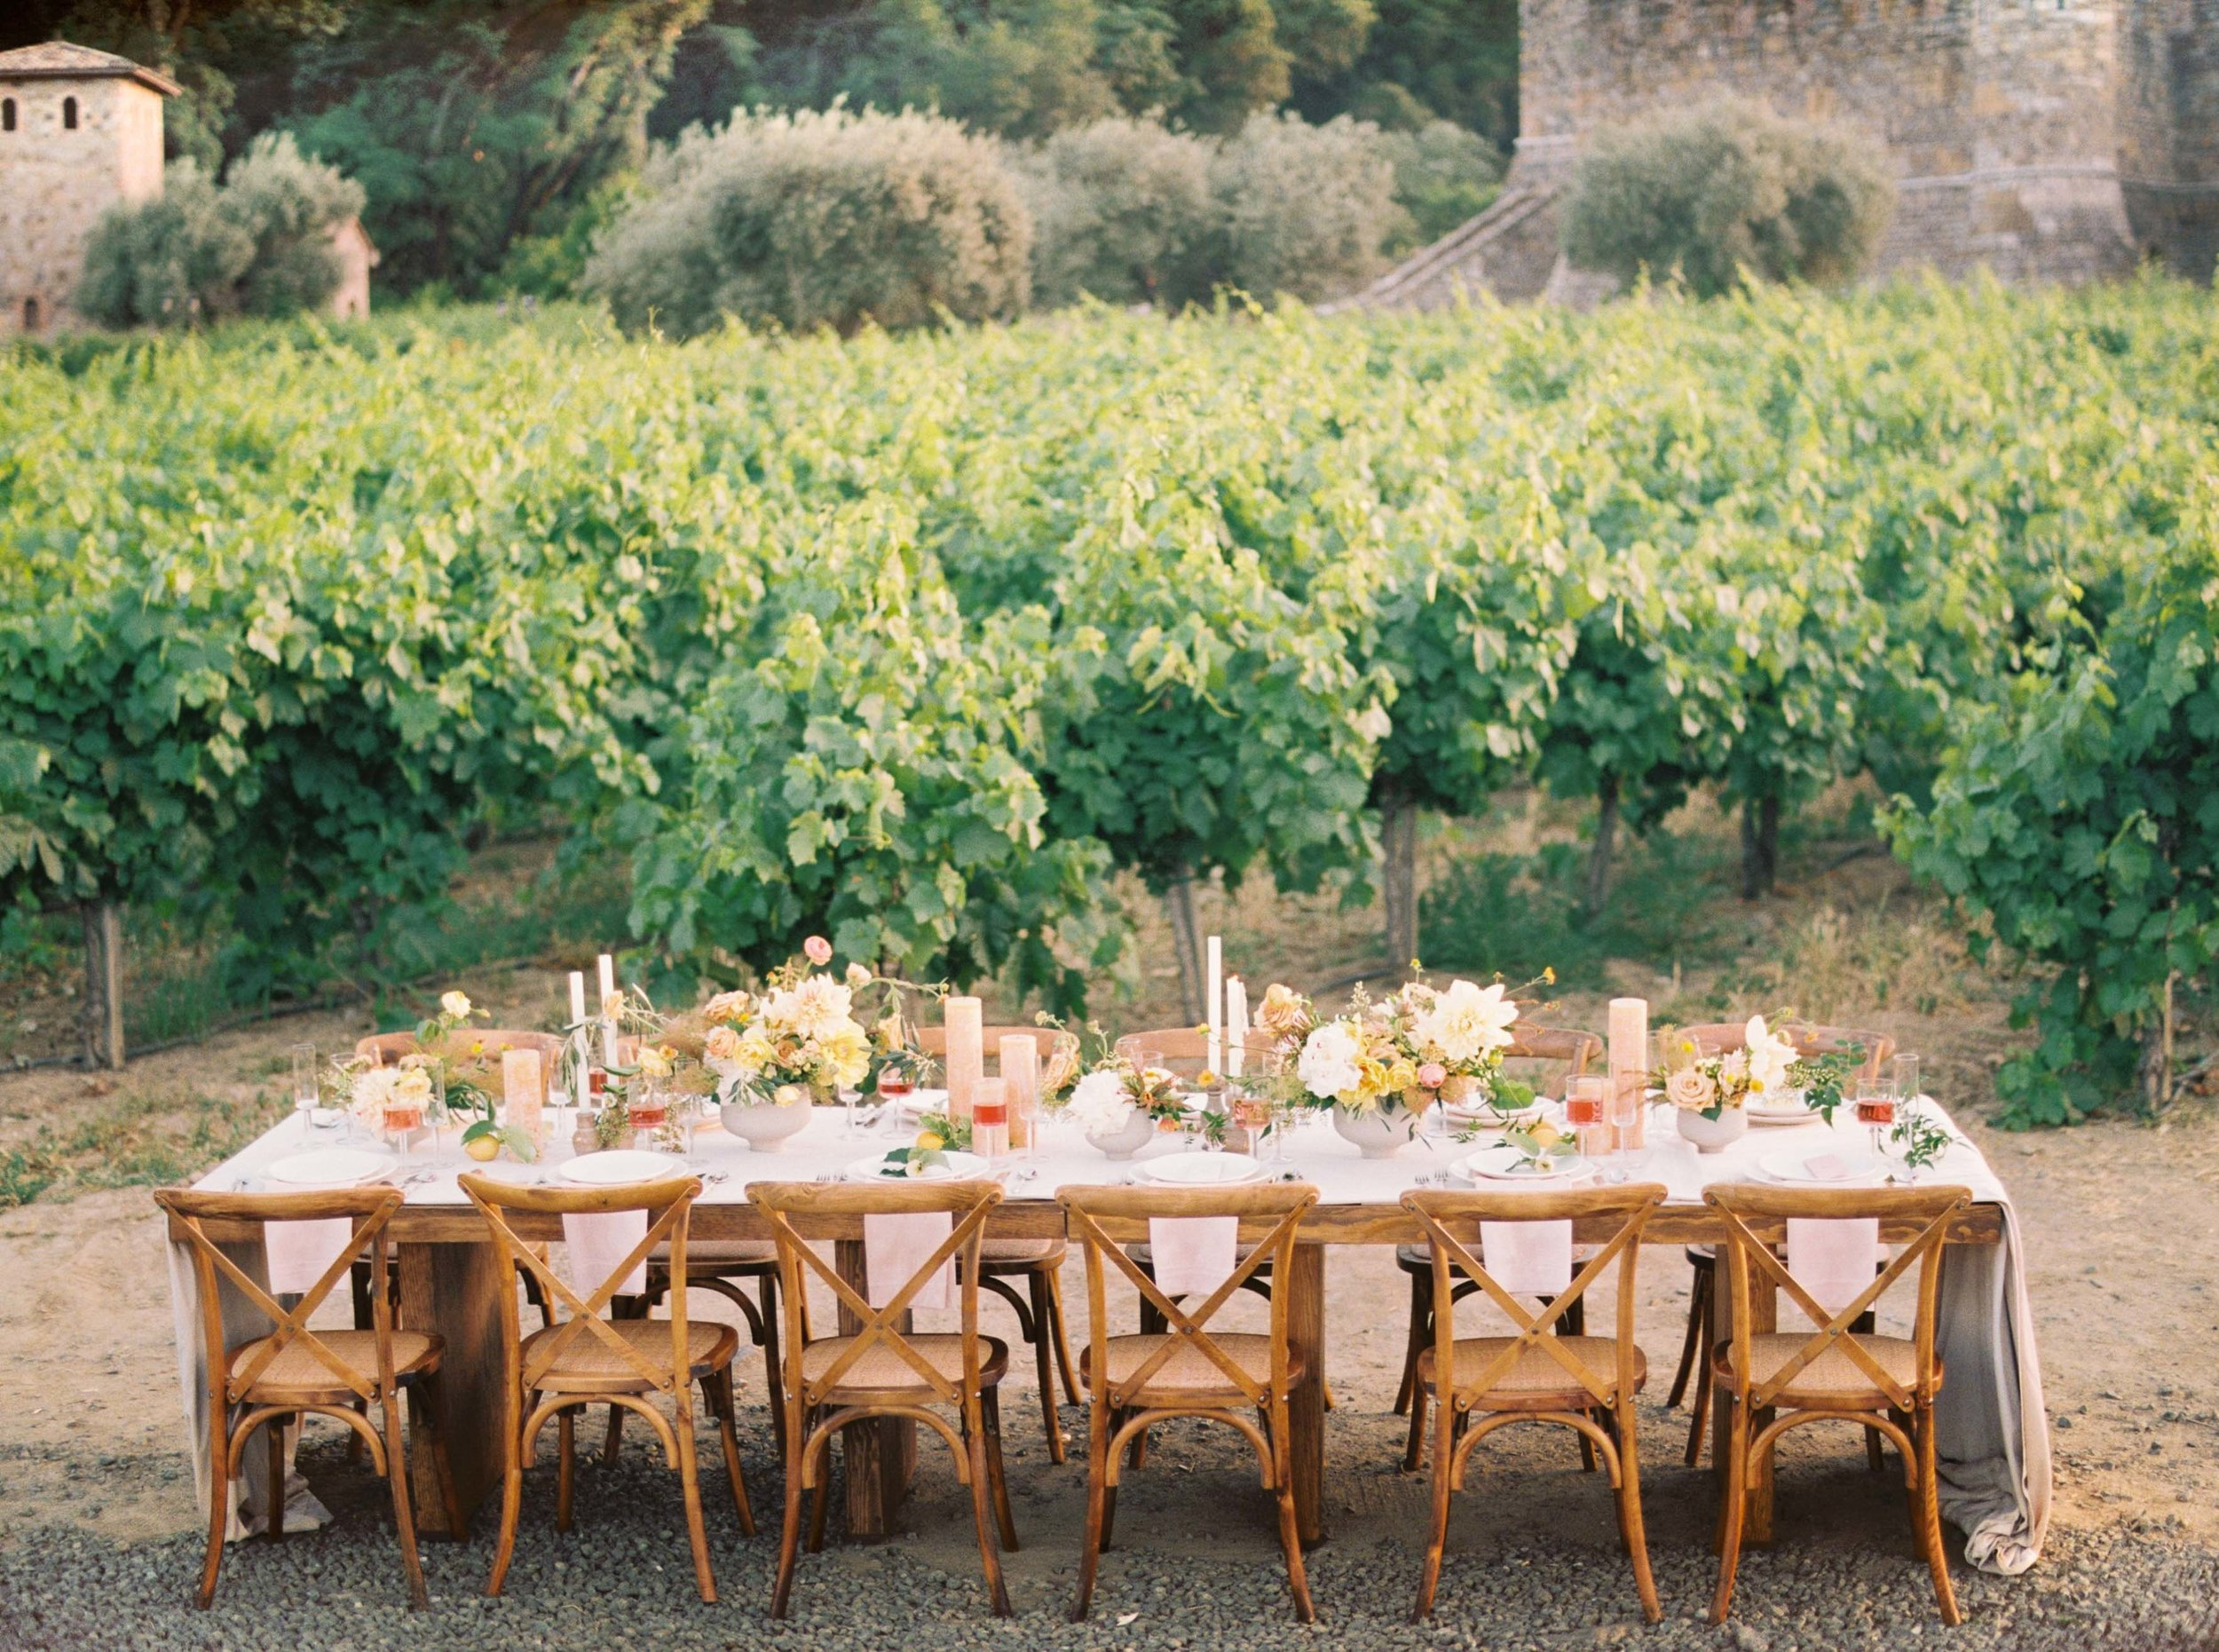 070napa_wedding_photographer_and_videographer_destination_and_elopement_photography.jpg